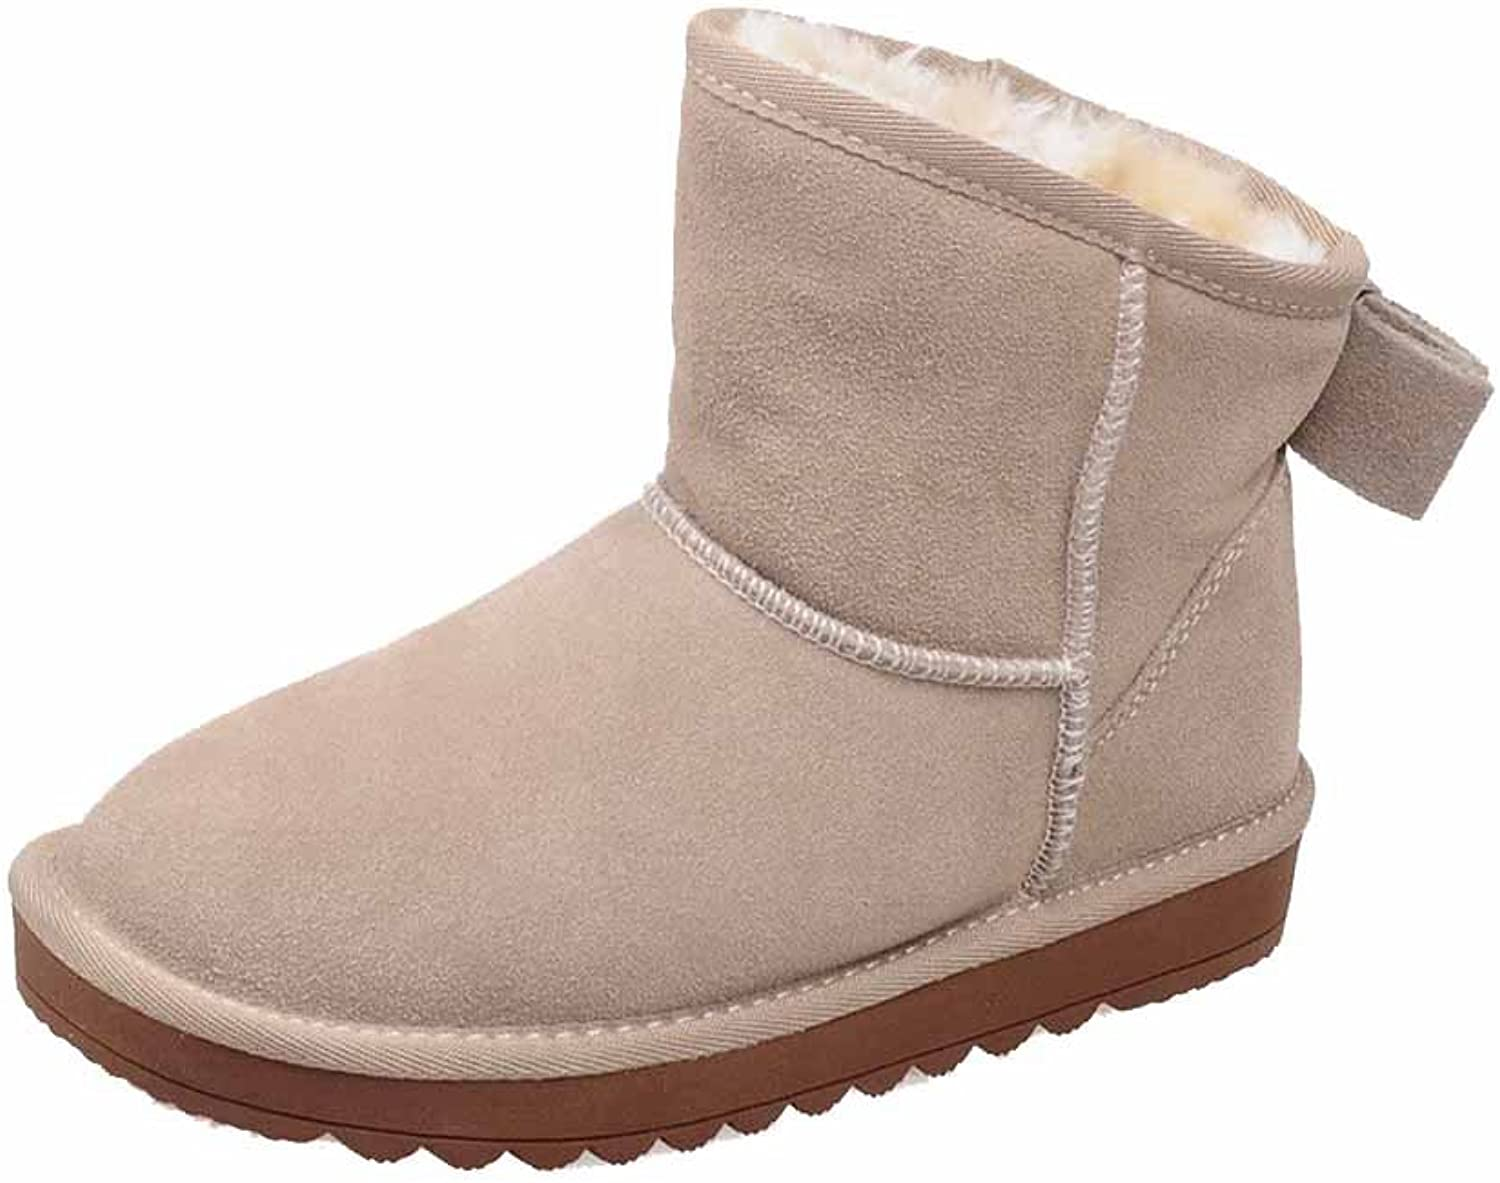 WeiPoot Women's Frosted Pull-on Round Closed Toe Low-Heels Low-top Snow-Boots